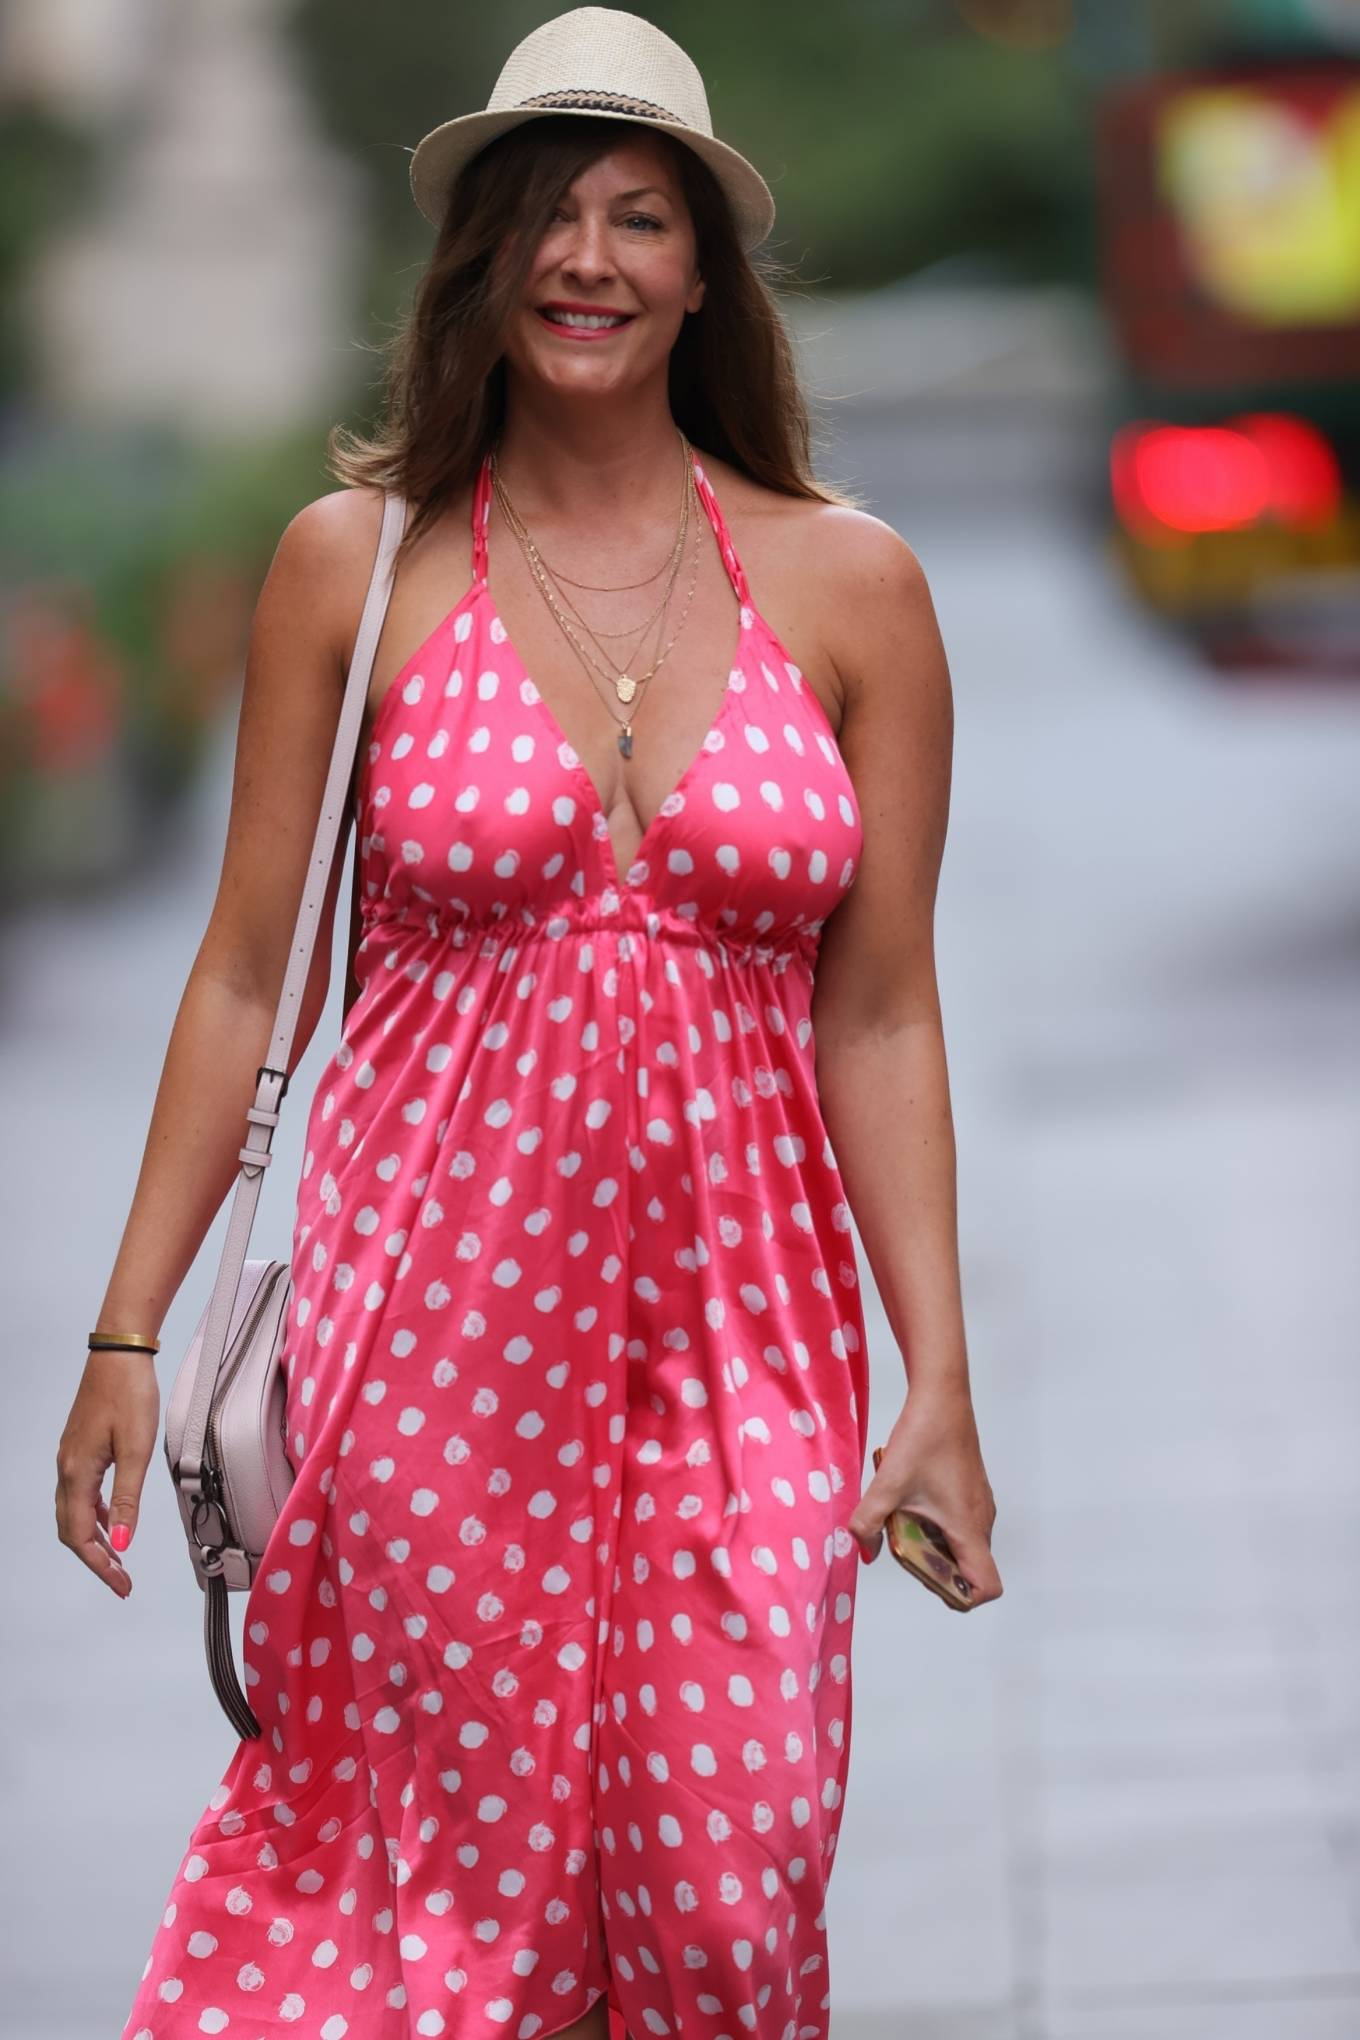 Lucy Horobin - In a red polka dot dress at Heart Dance radio in London